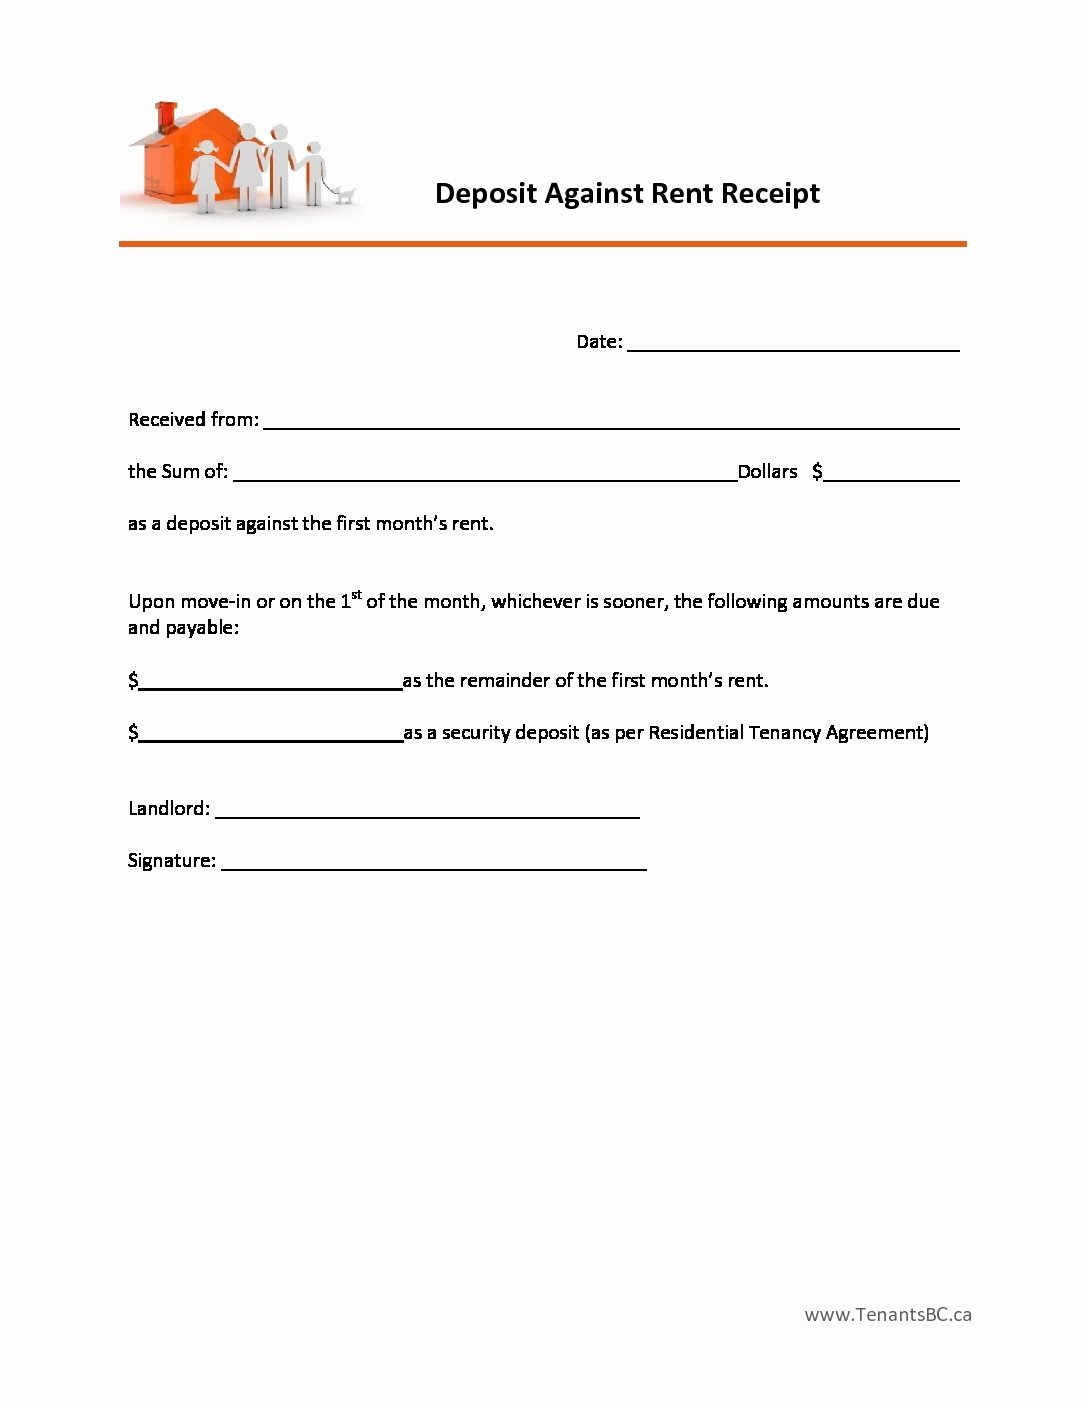 Rental Deposit Receipt Template Awesome Free Rent Receipt Template and What Information to Include